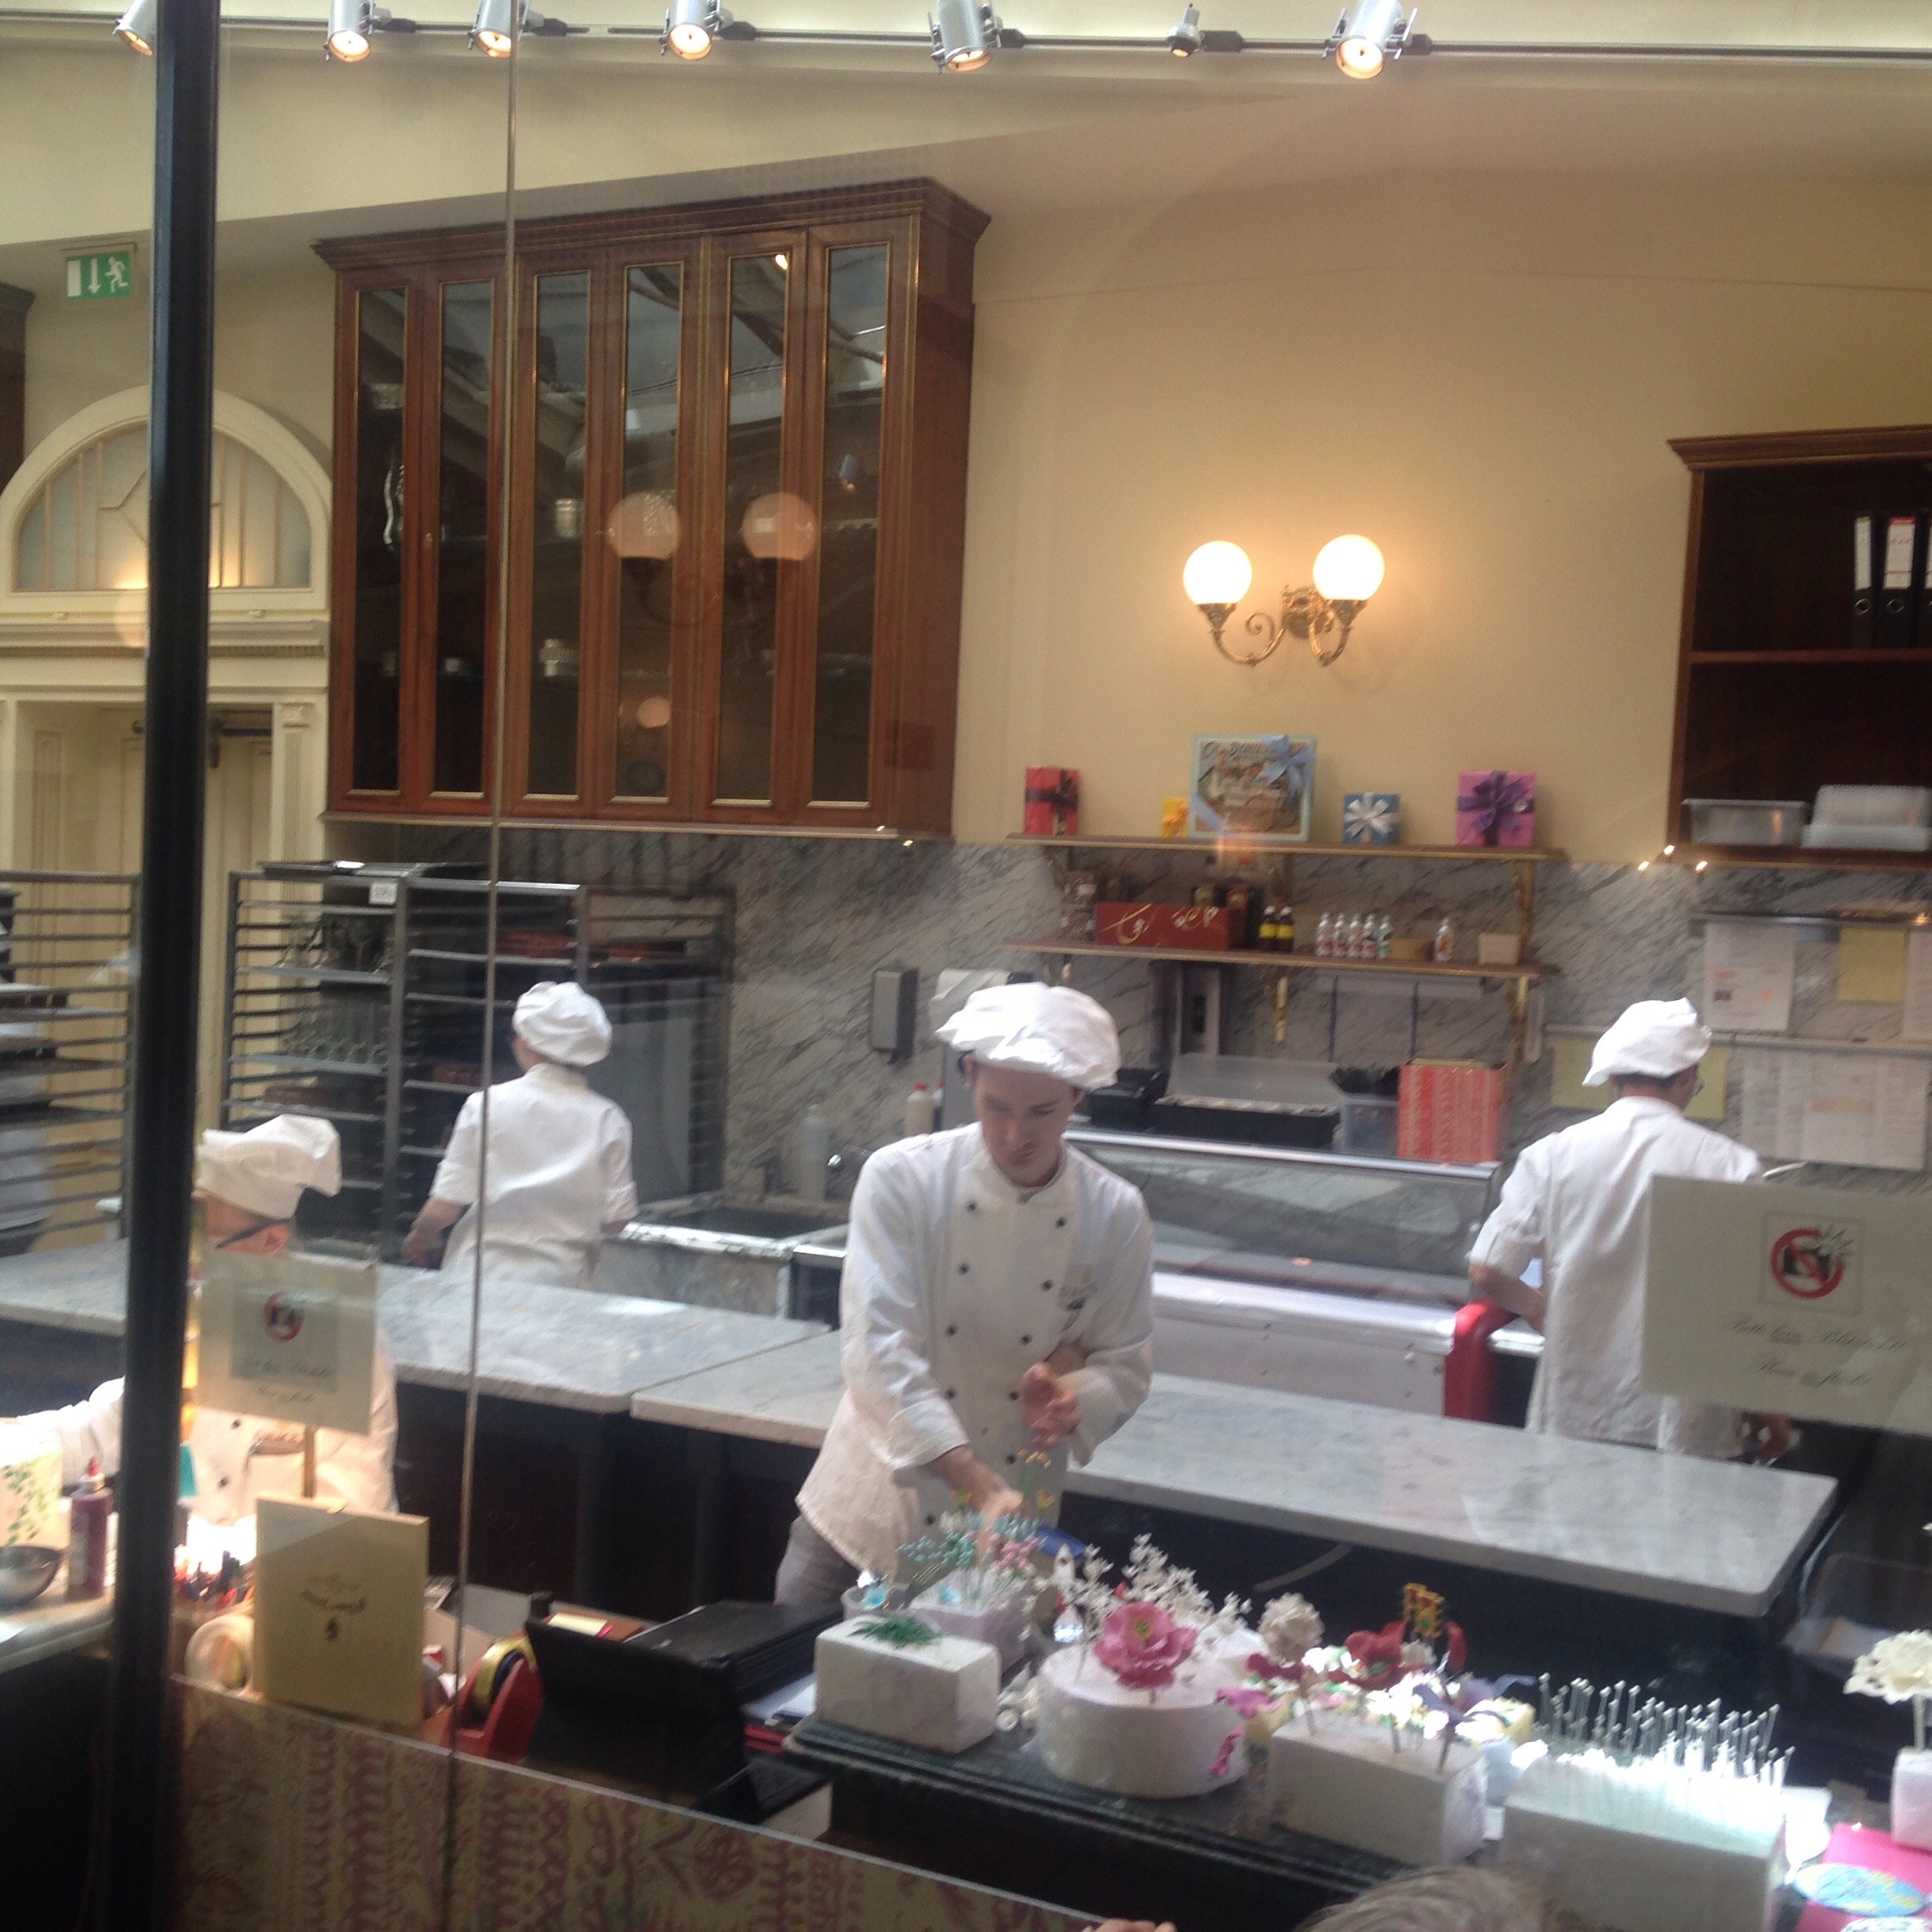 The bakers of the Demel pastry shop